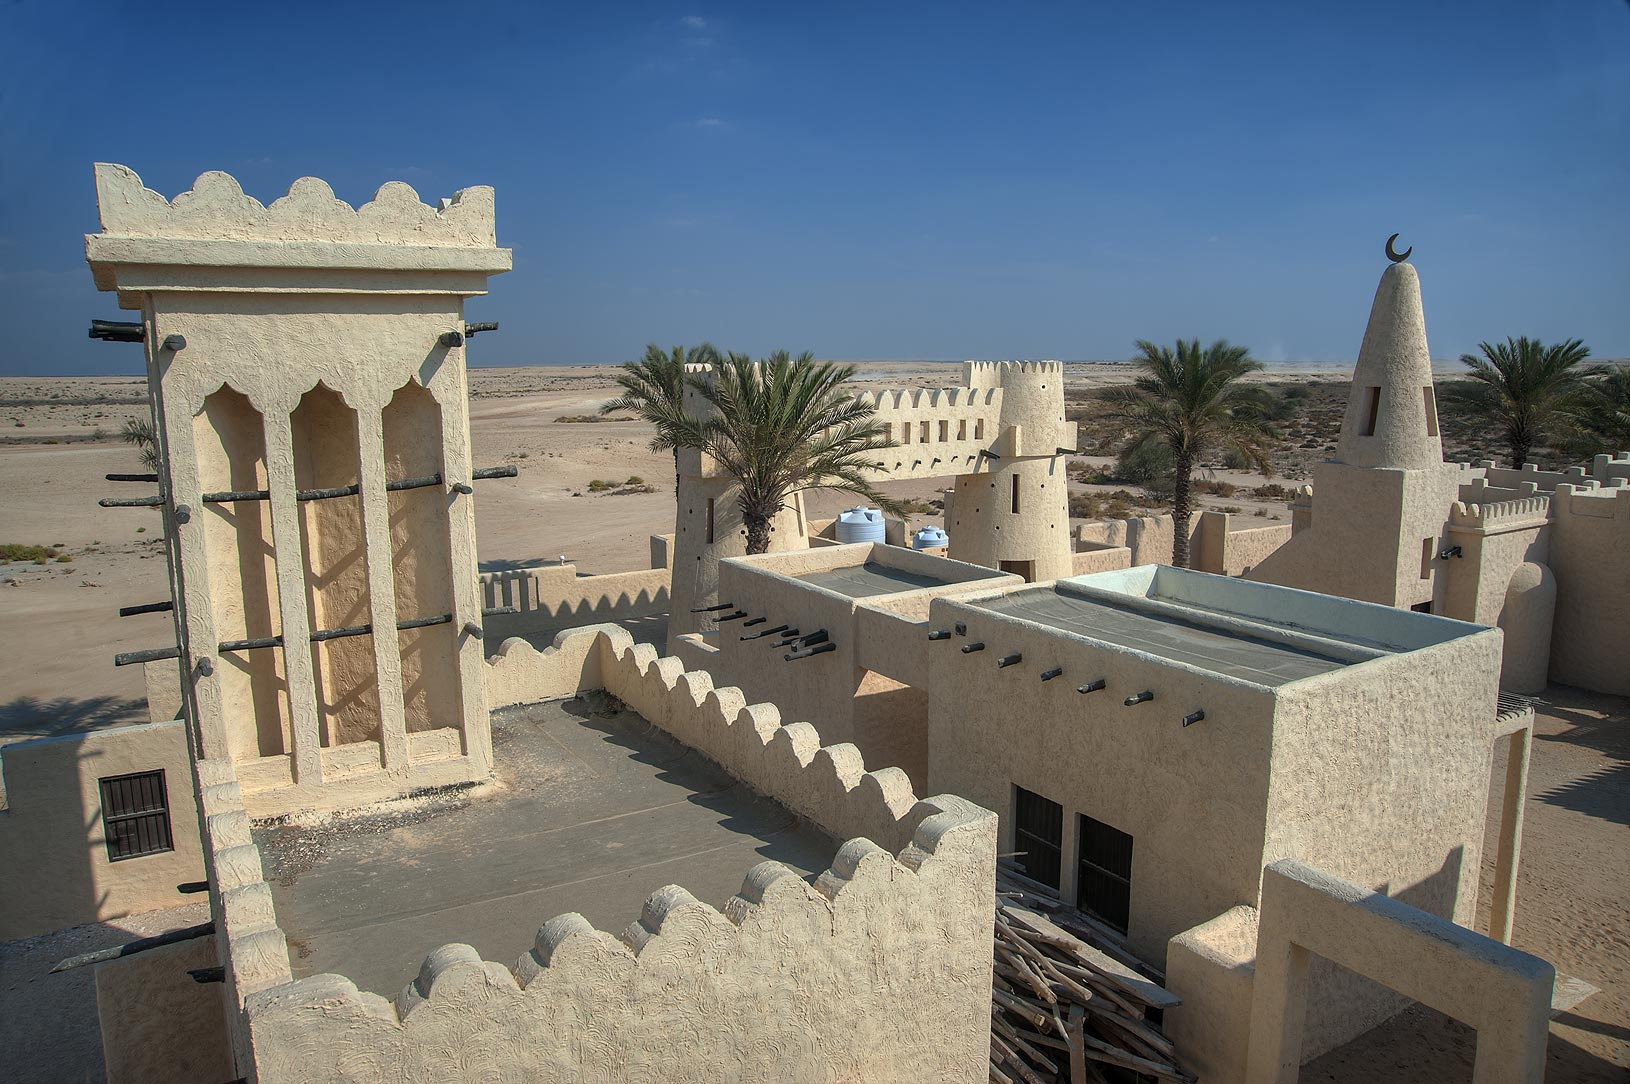 Film City in Ras Abrouq peninsula in west central...view from observation platform. Qatar